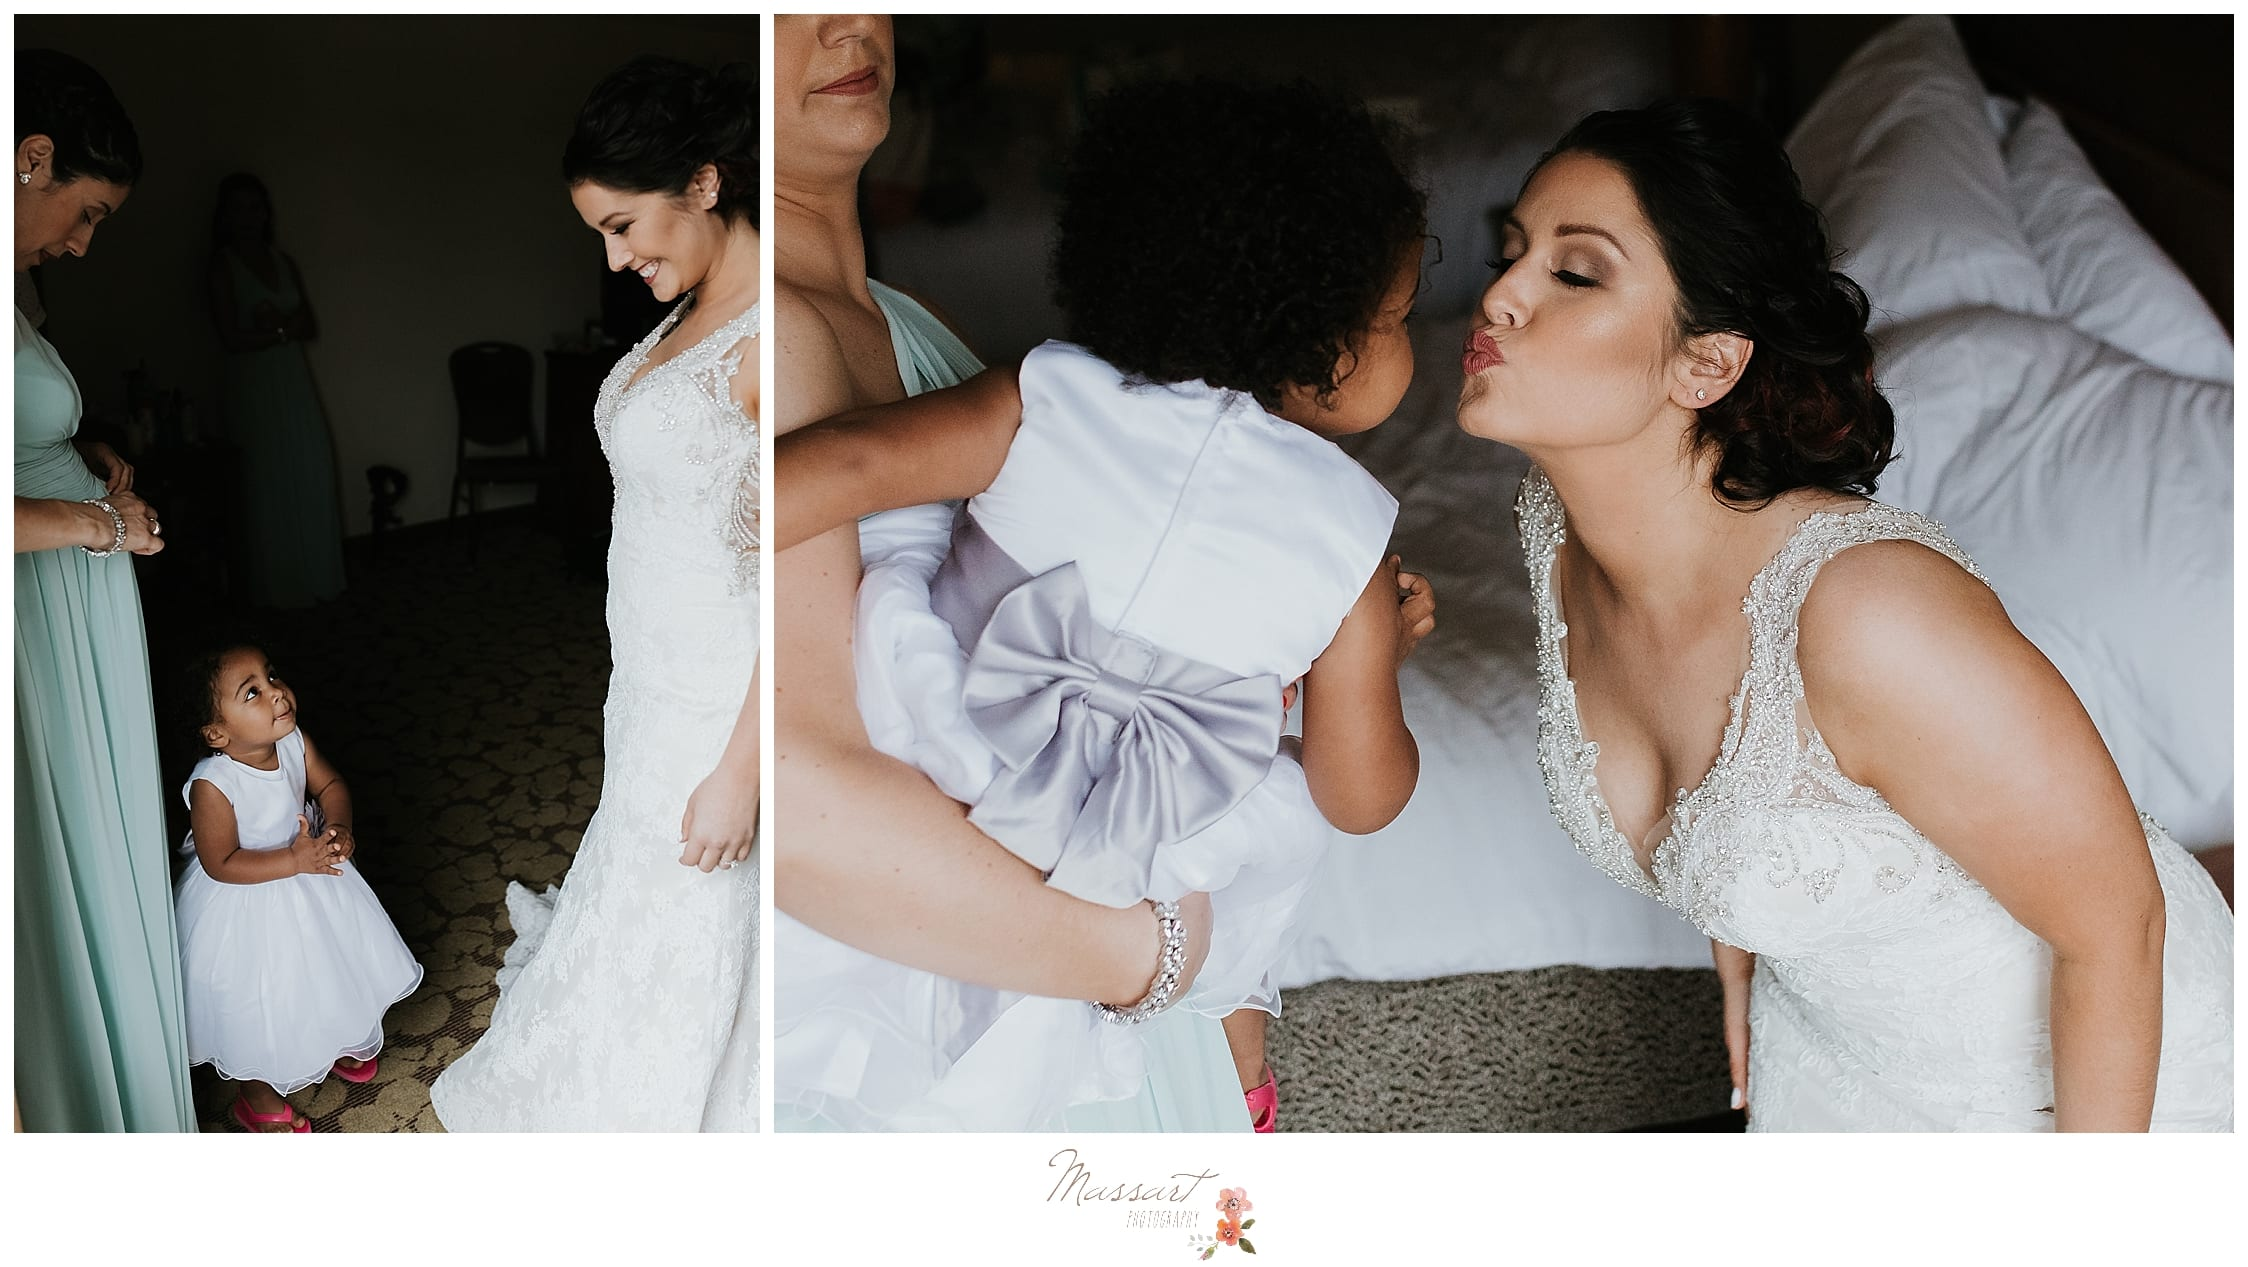 Bride with flower girls in white gowns with silver bows photographed by Massart Photography, RI, CT, and MA wedding photographers.